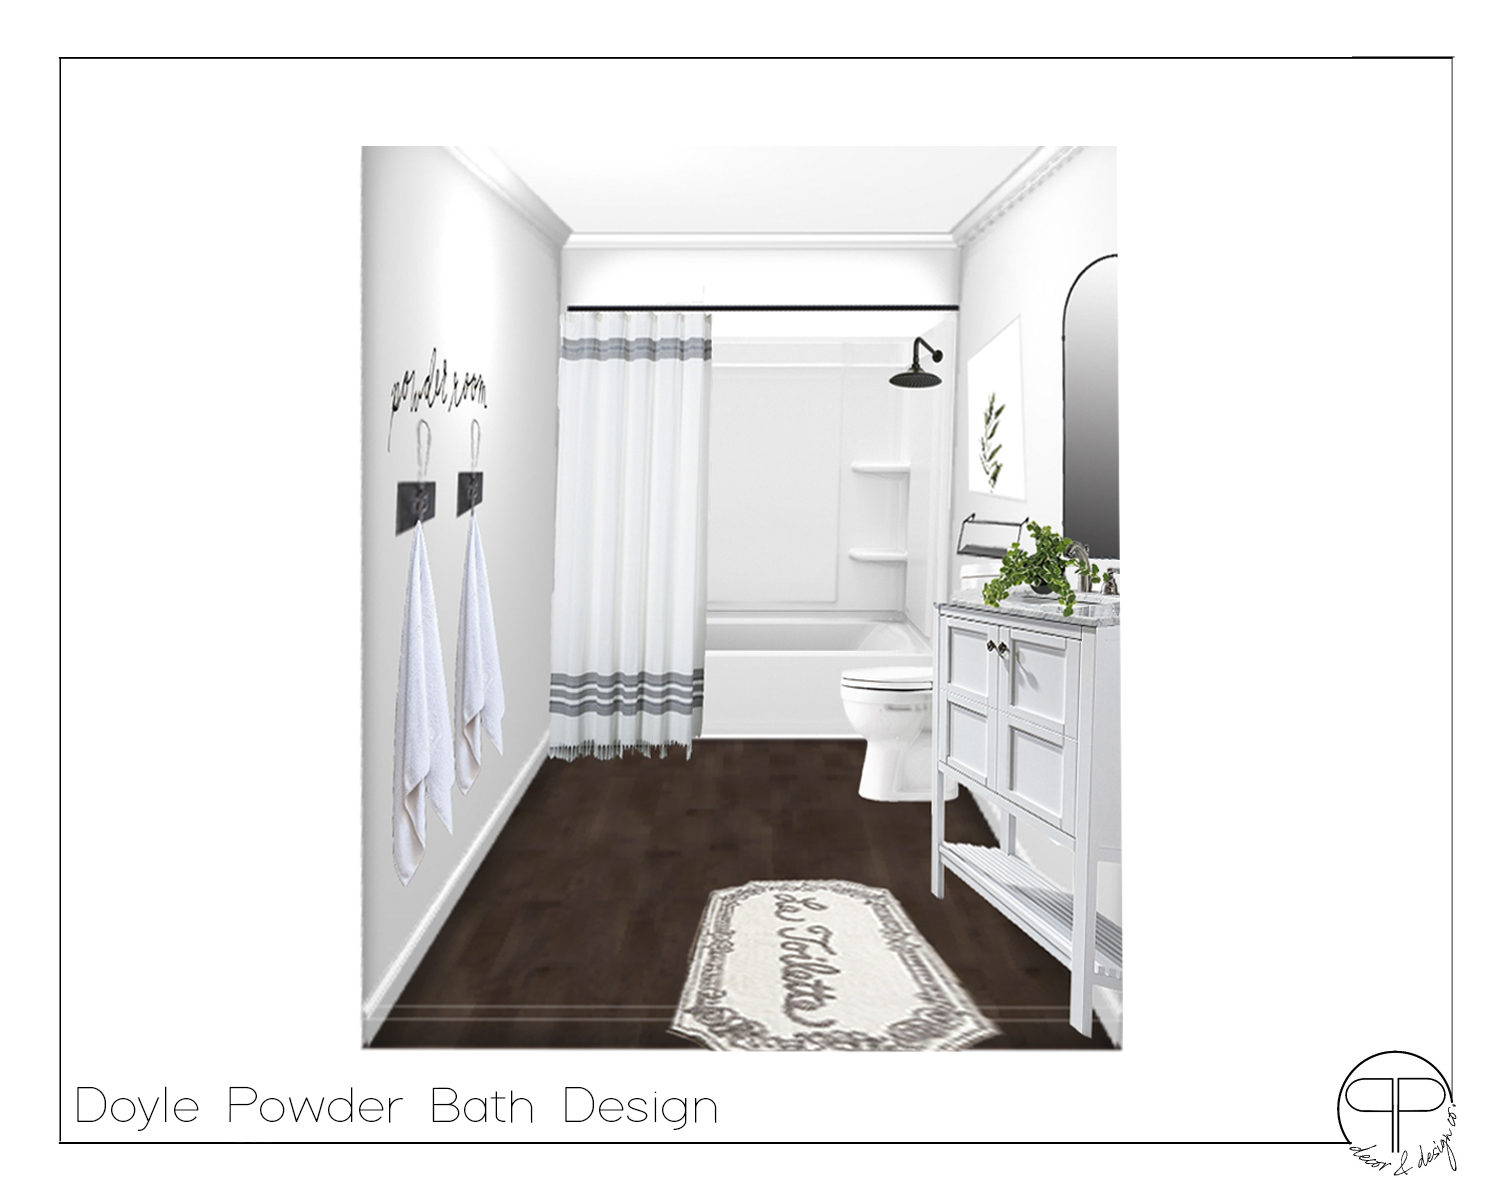 Doyle_Powder_Bath_Design.jpg